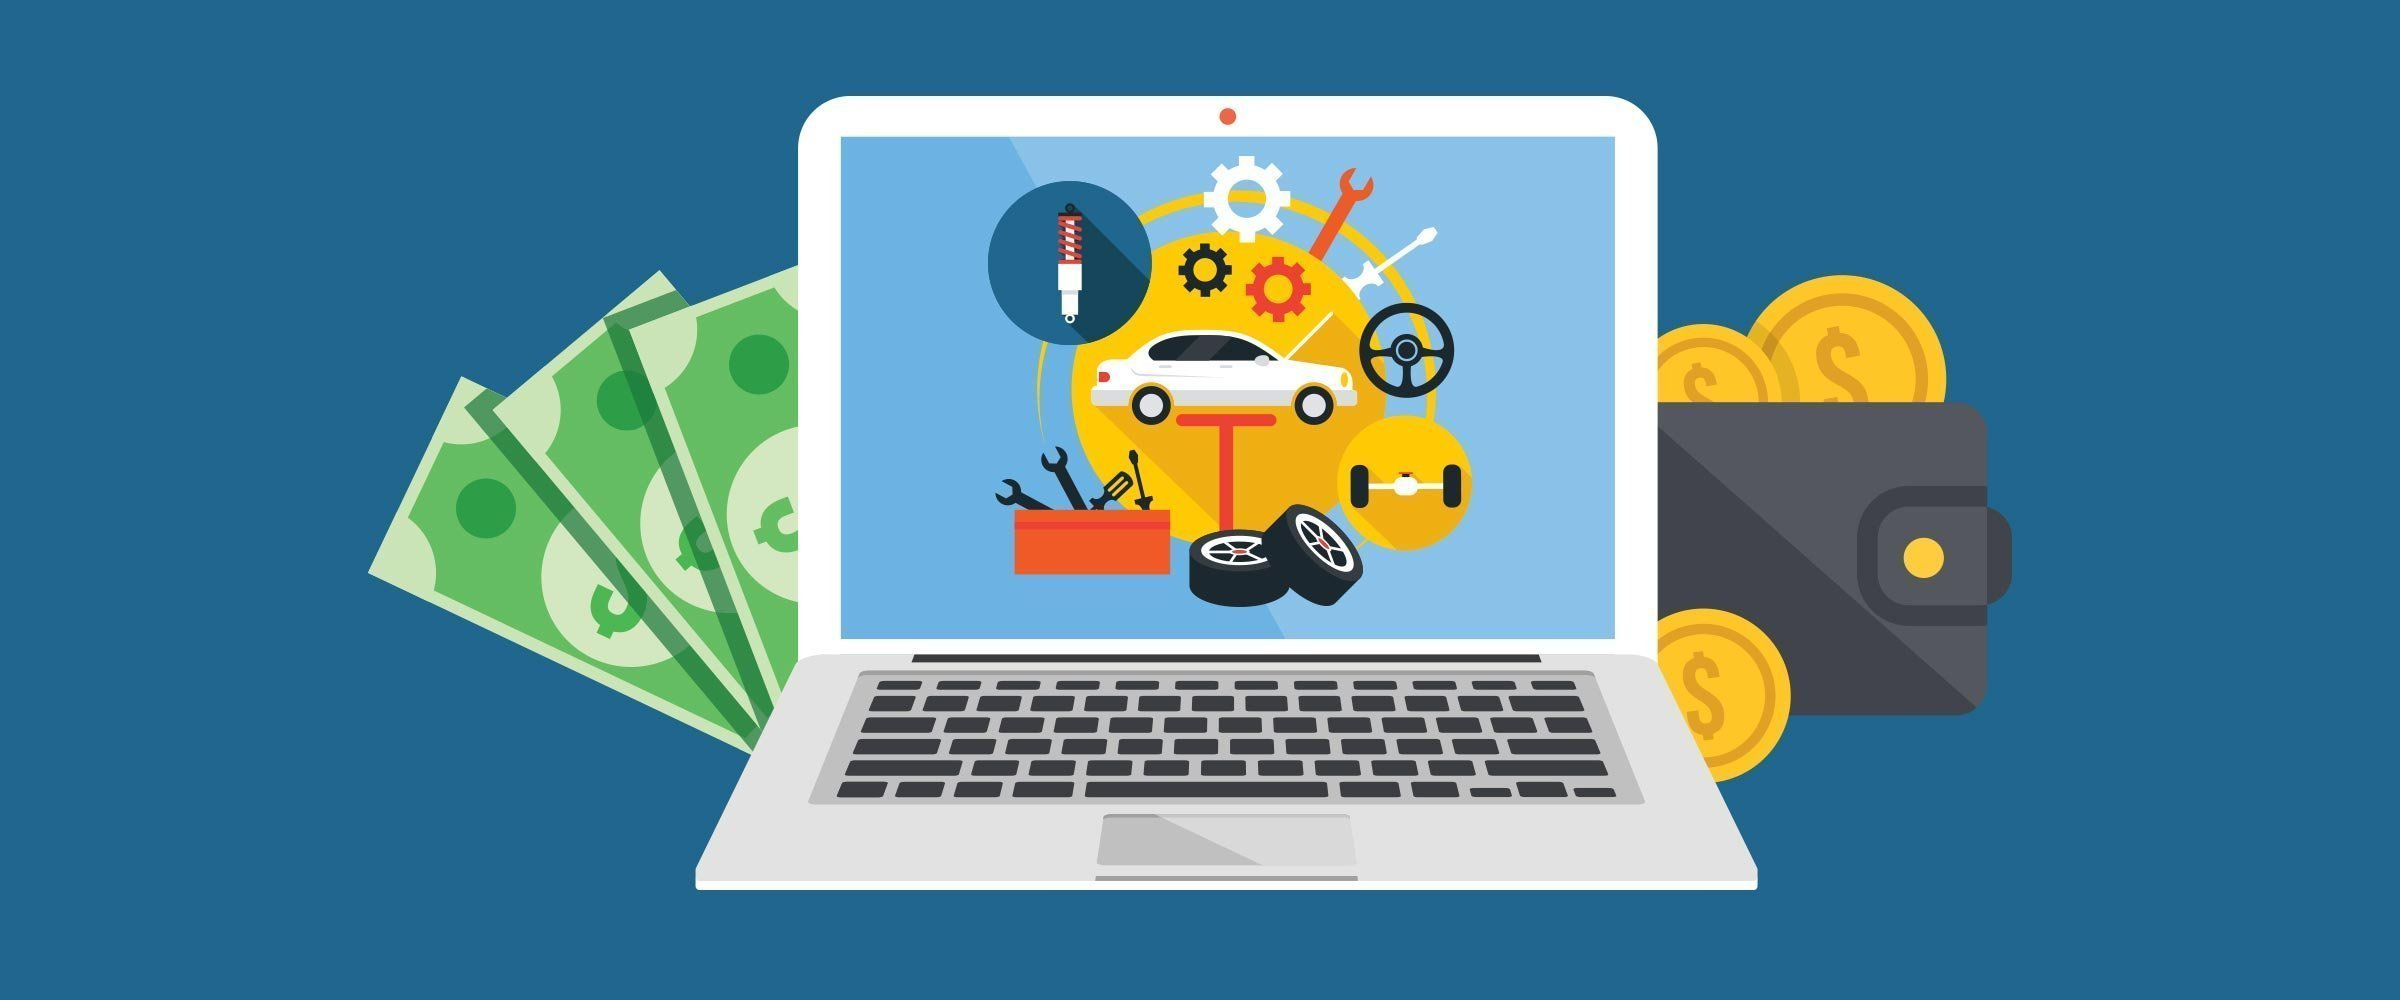 Harness the awesome power of modern computing to save on car insurance!